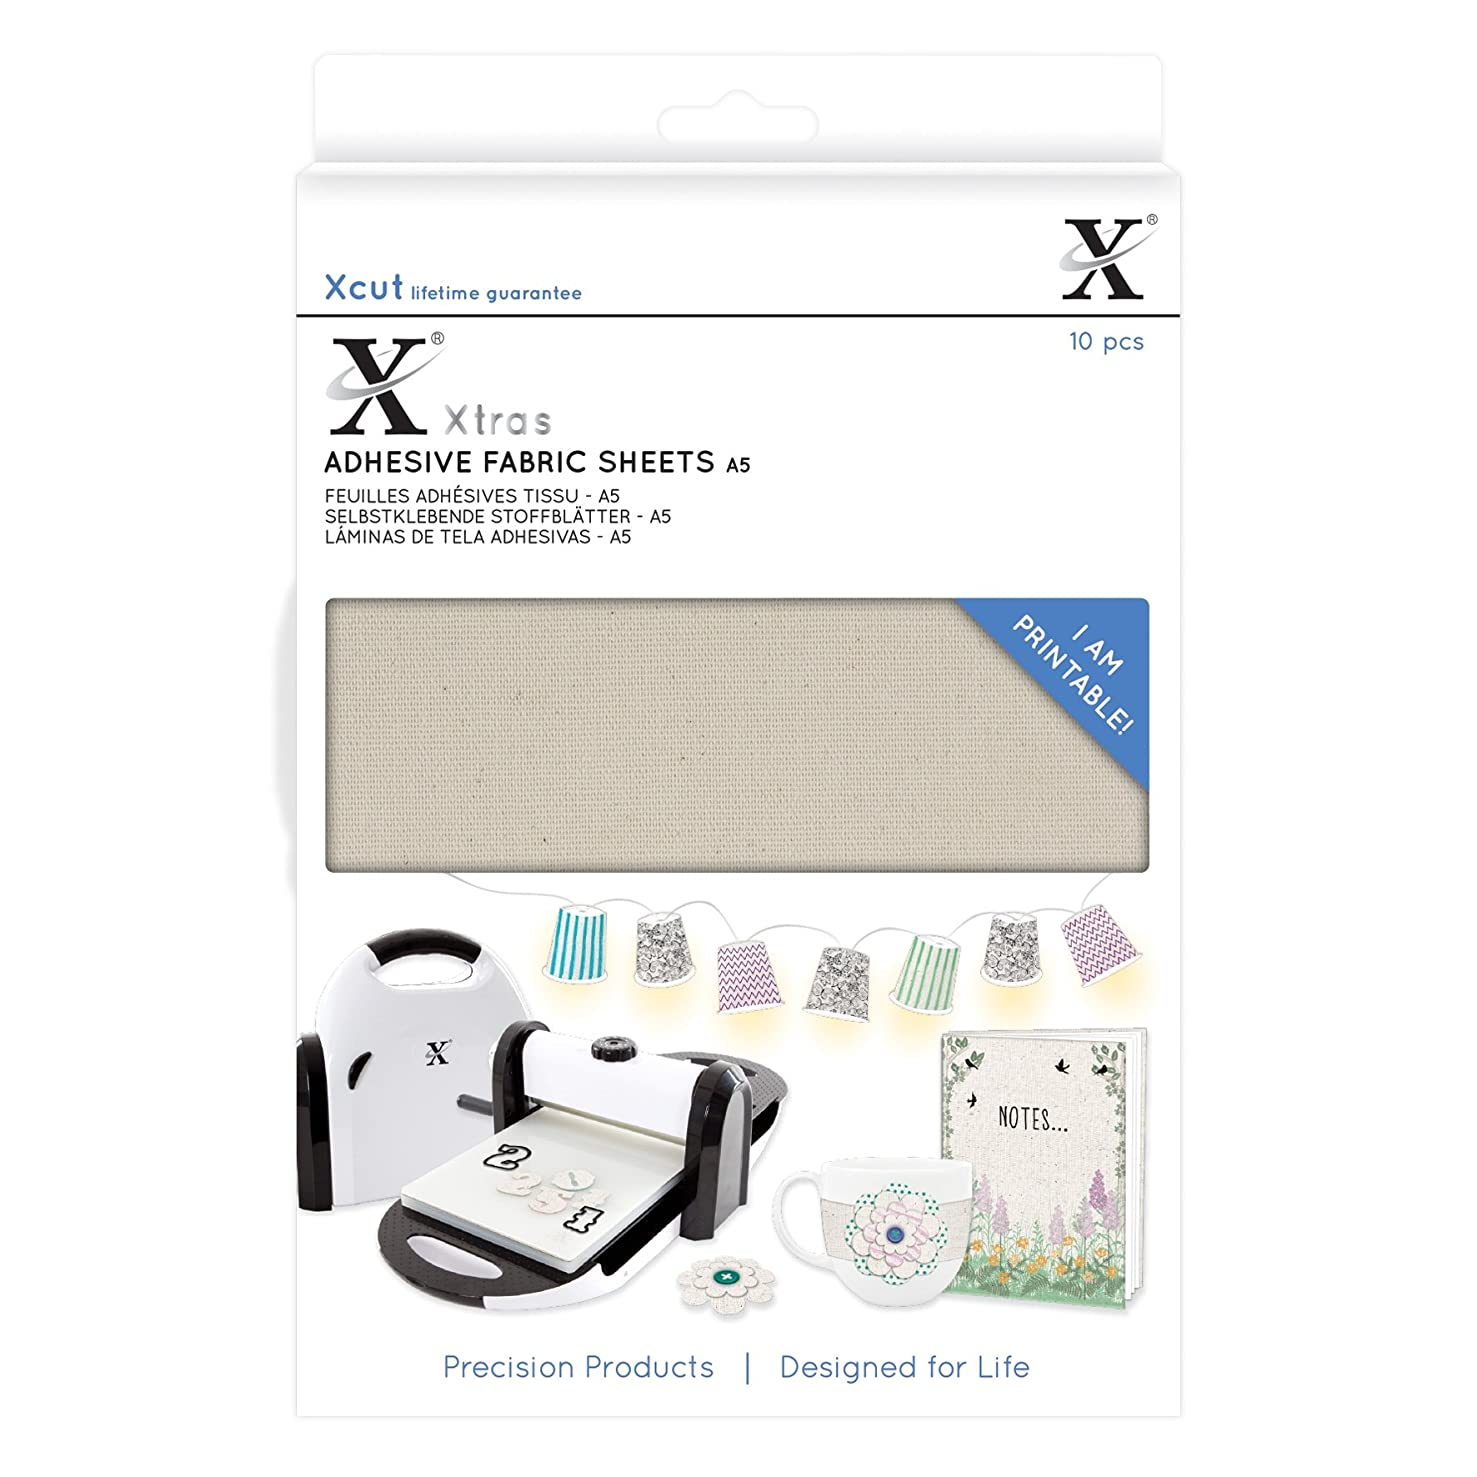 DOCrafts XCU174404 Xcut Xtra A5 Adhesive Fabric Sheets (10 Pack), Beige